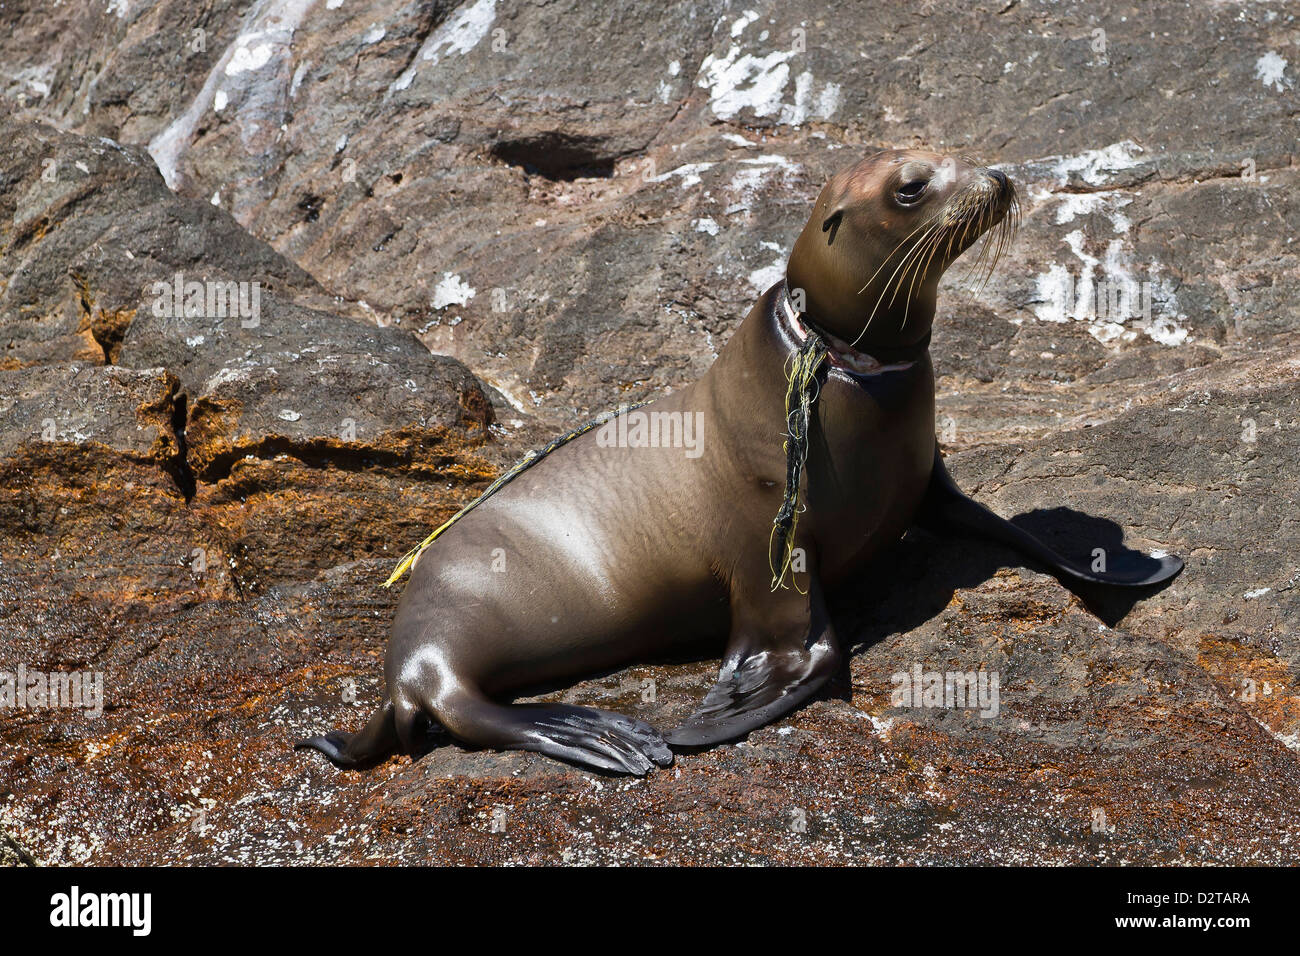 California sea lion pup entangled in net, Los Islotes, Baja California Sur, Gulf of California (Sea of Cortez), - Stock Image